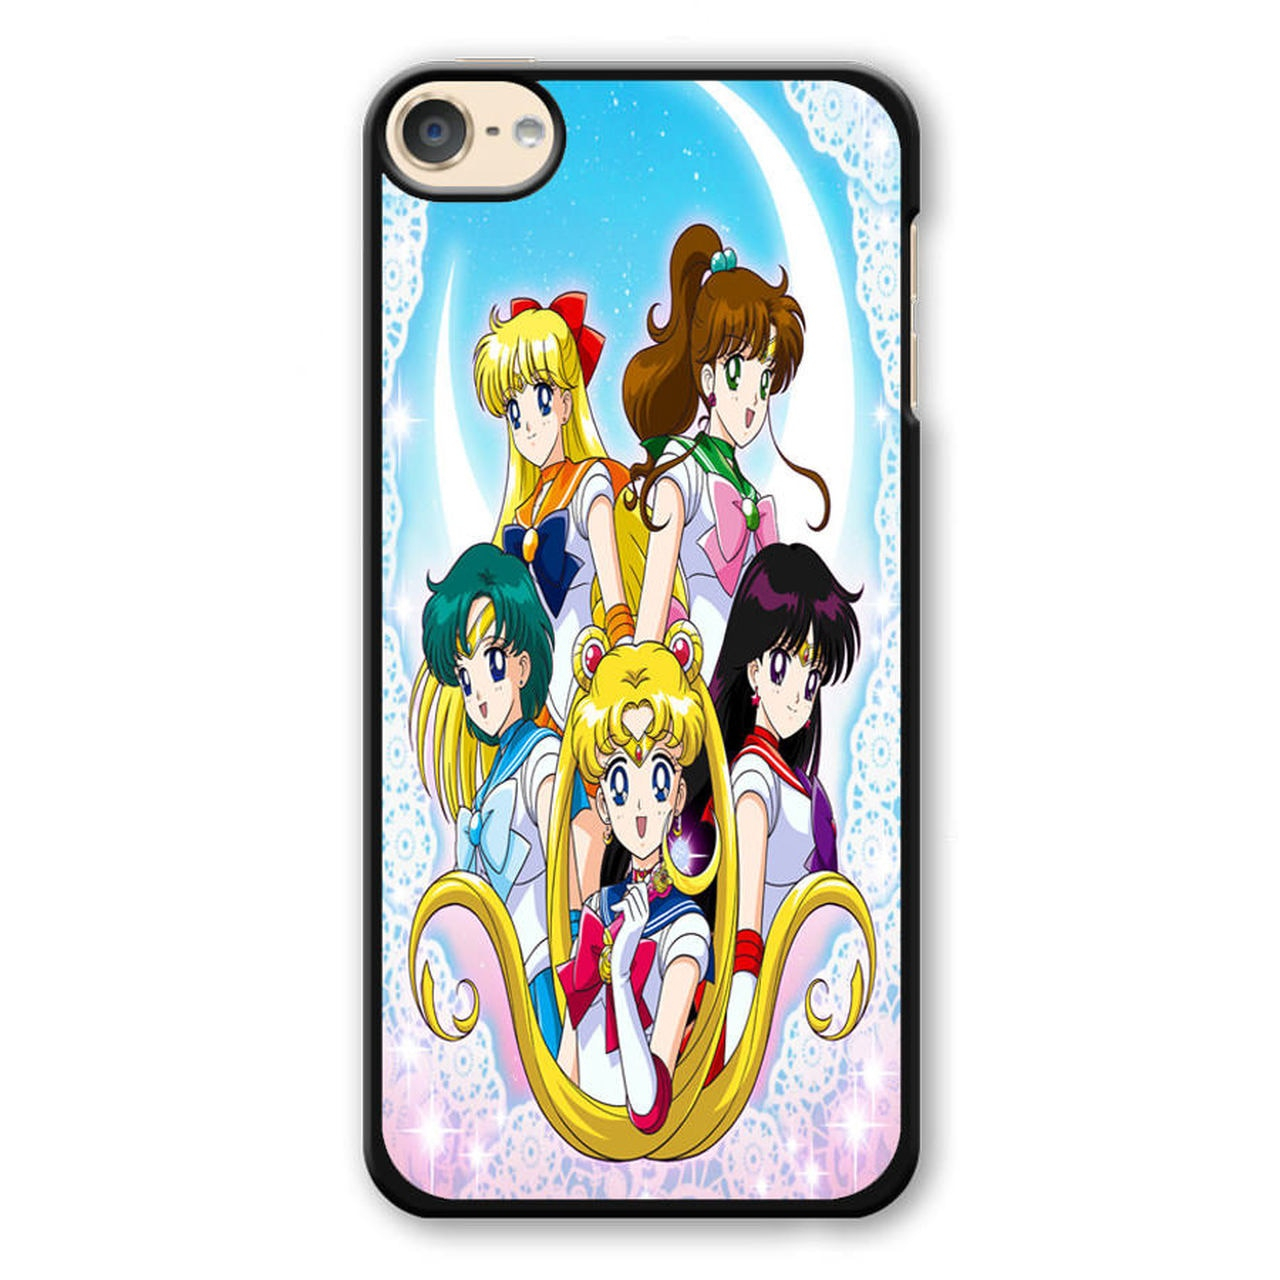 sailormoon cute wallpaper ipod touch 6 case